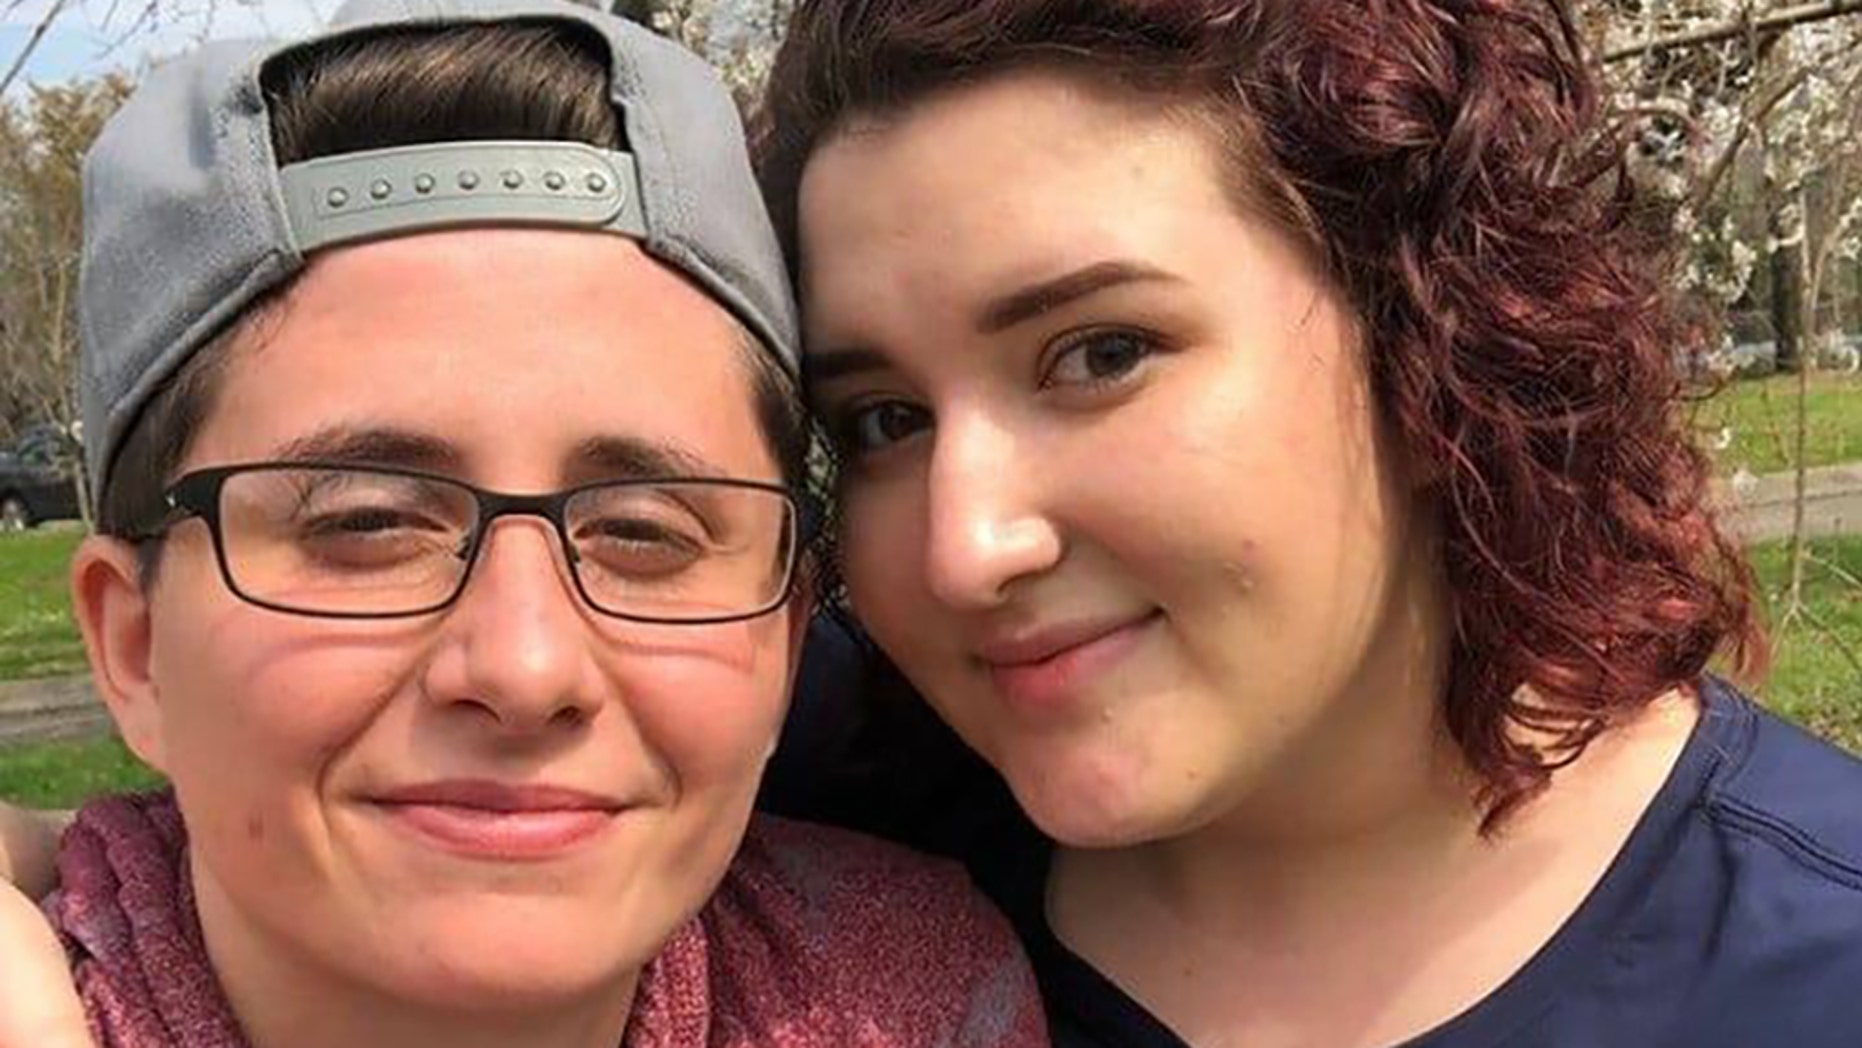 Angela Wright, left, and her fiancee, Victoria Owen, right, are moving out of the apartment sooner than first expected.